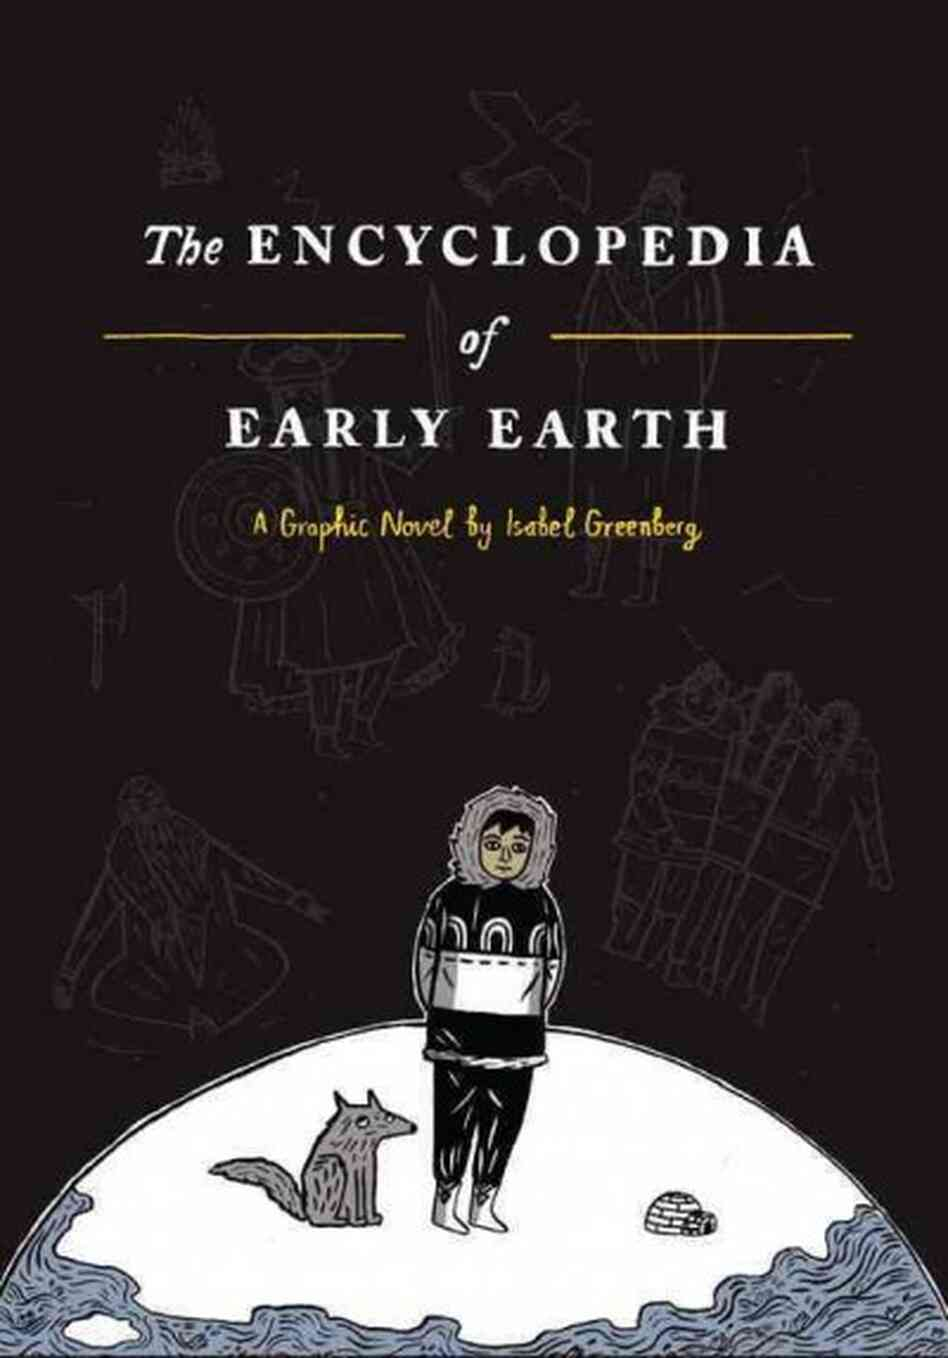 Graphic Novel Book Cover : Book review the encyclopedia of early earth by isabel